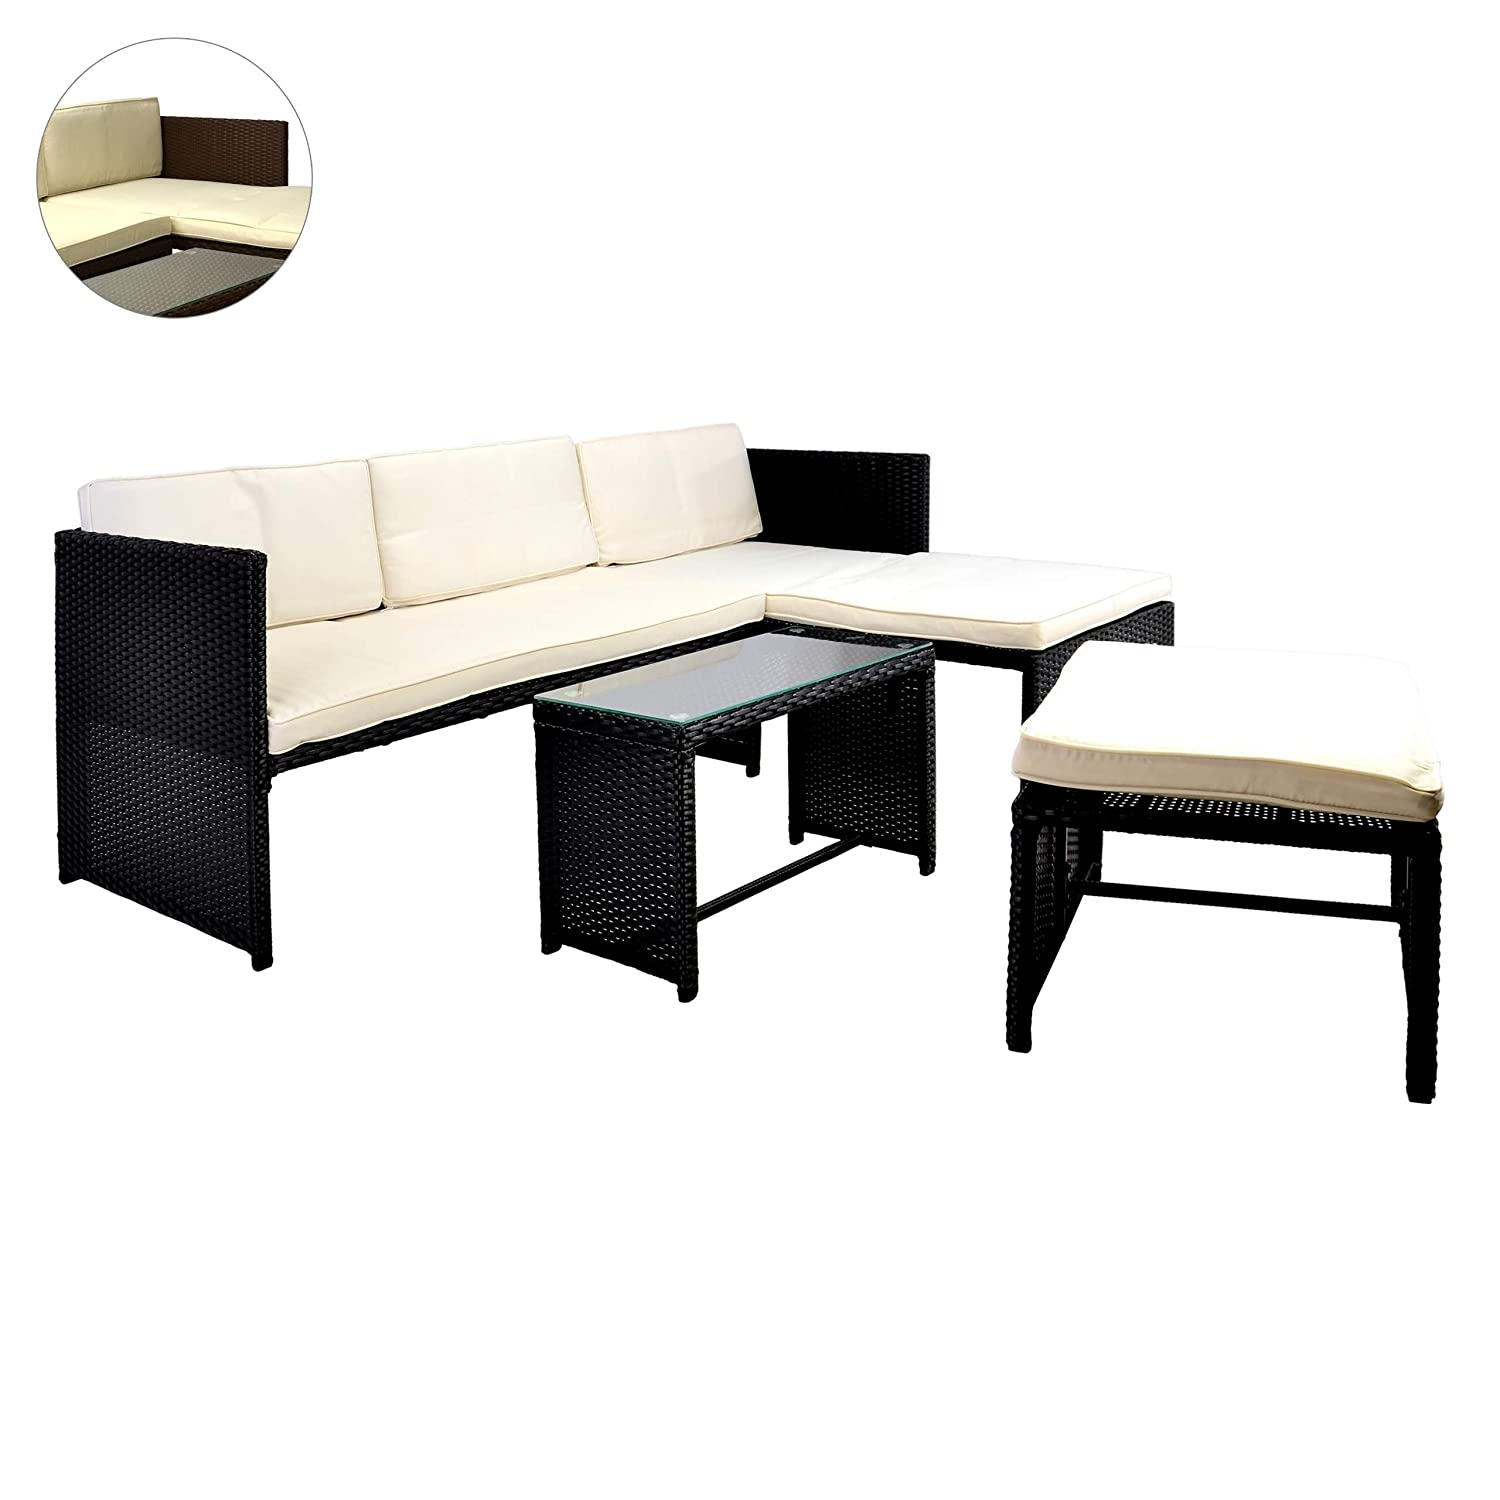 rattan sitzecke mit tisch poly rattan garnitur sitzgruppe. Black Bedroom Furniture Sets. Home Design Ideas